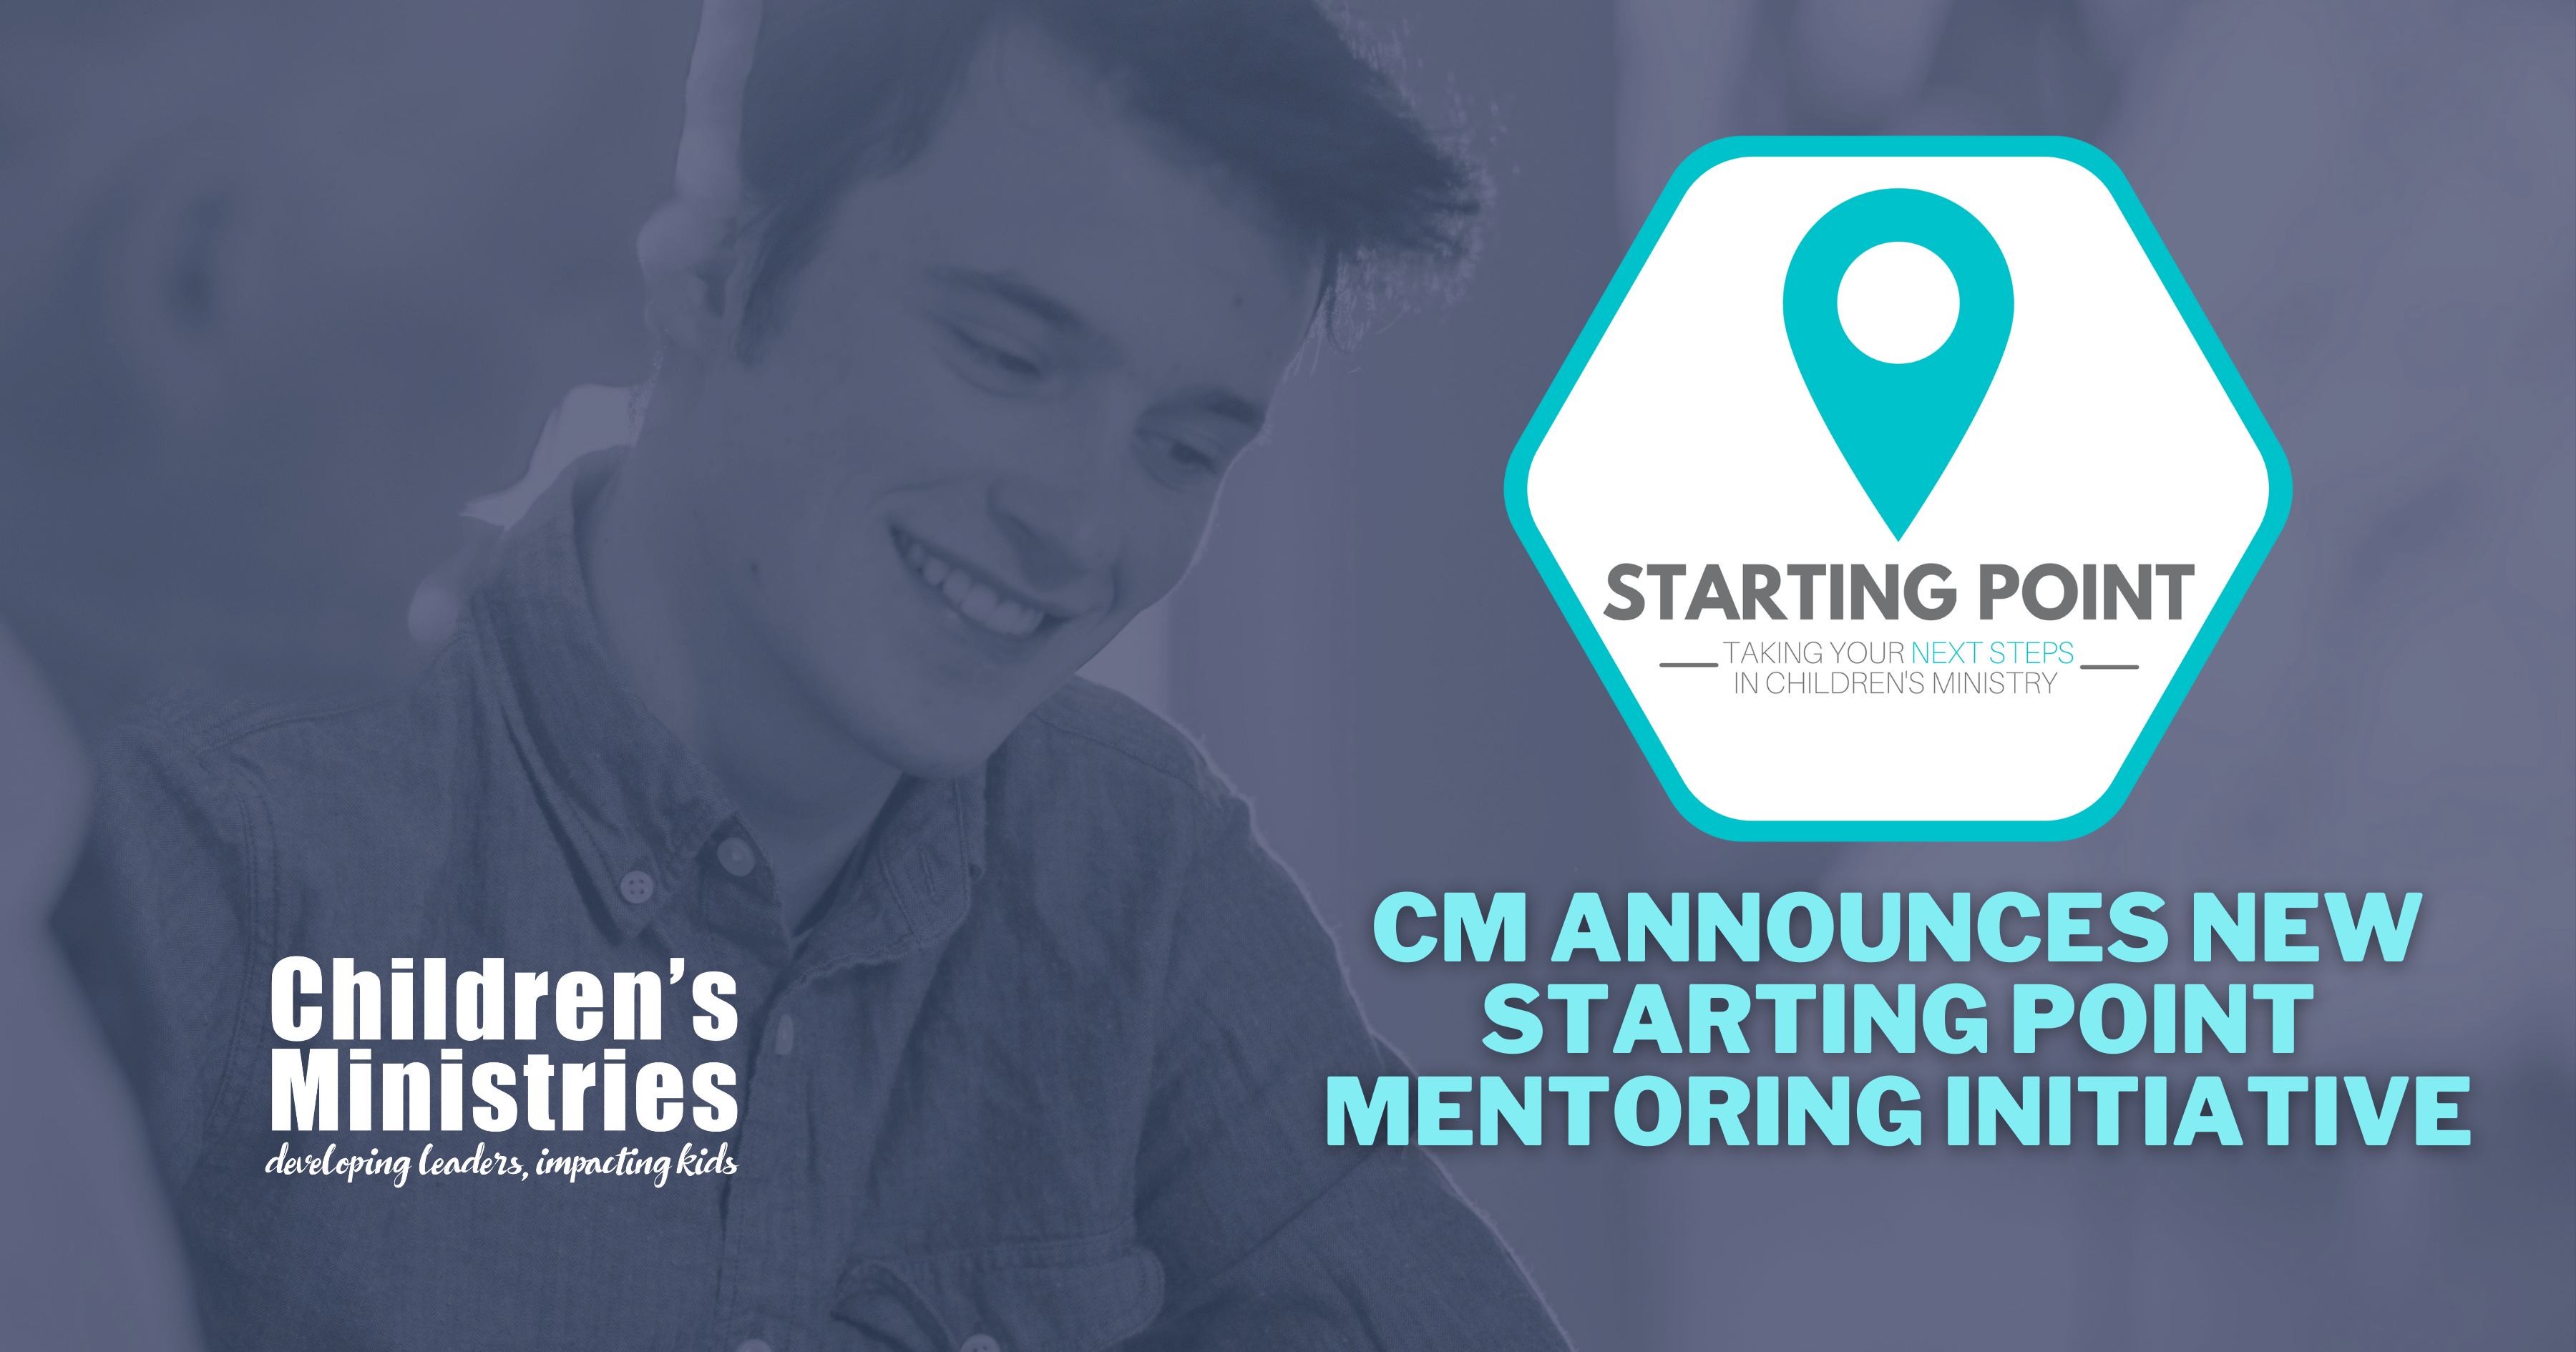 CM Announces the Starting Point Mentoring initiative